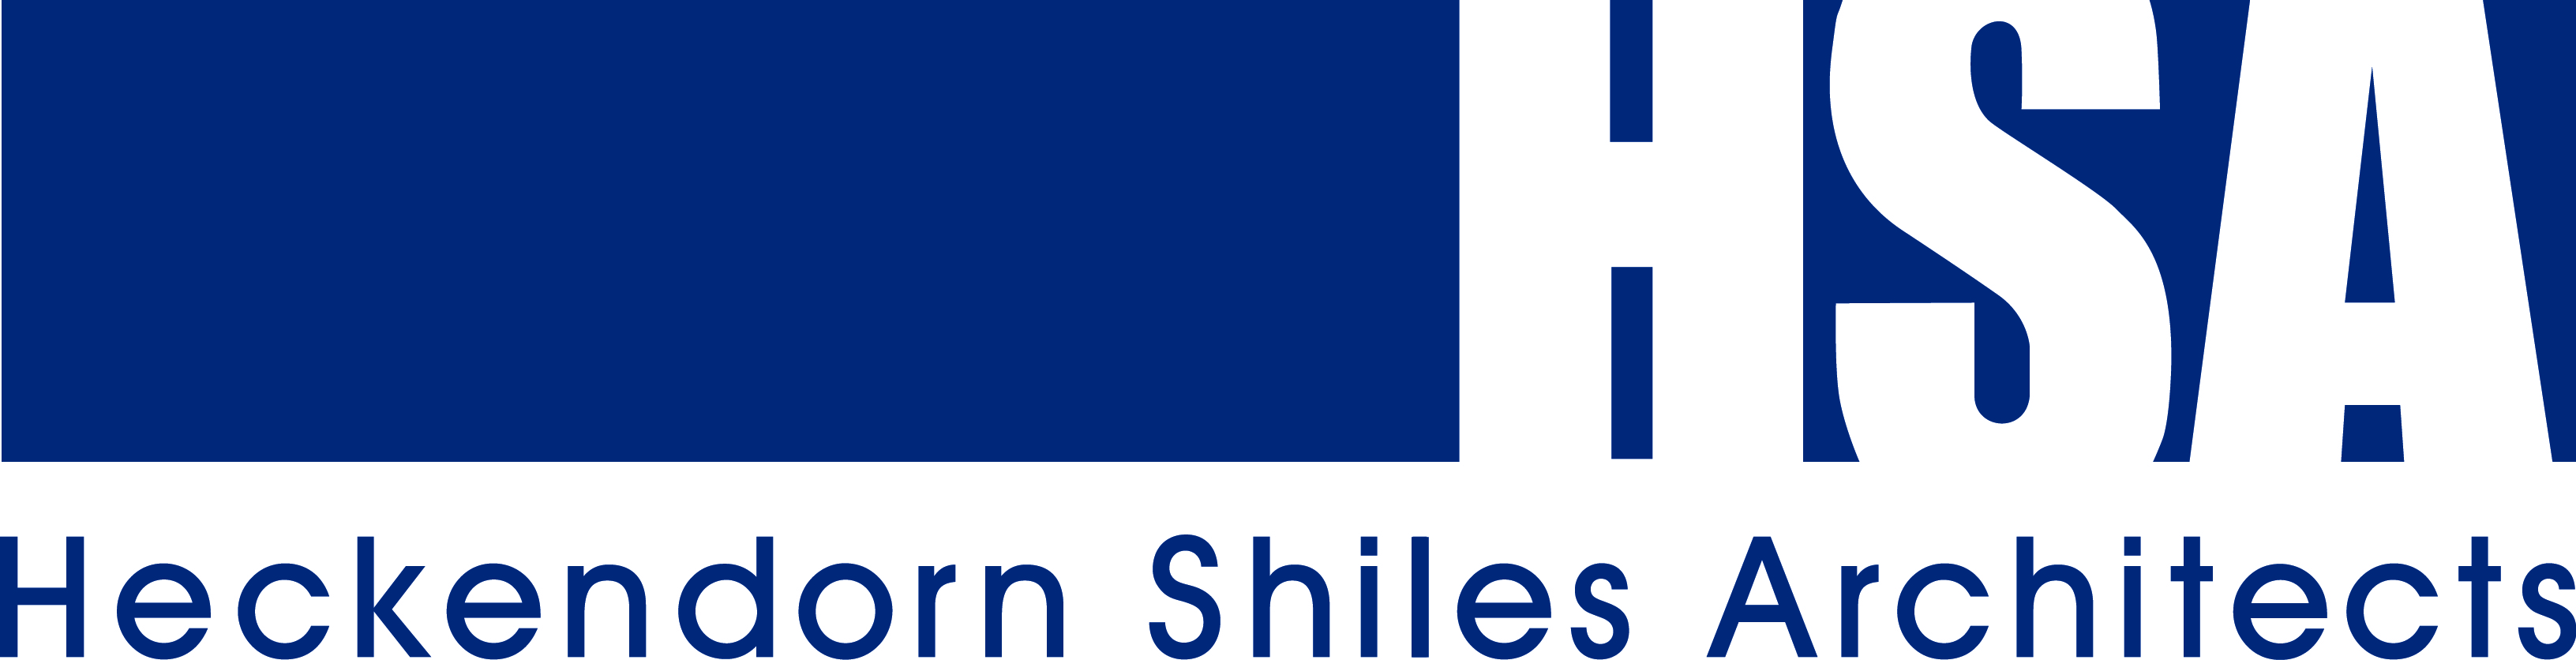 Heckendorn Shiles Architects Logo